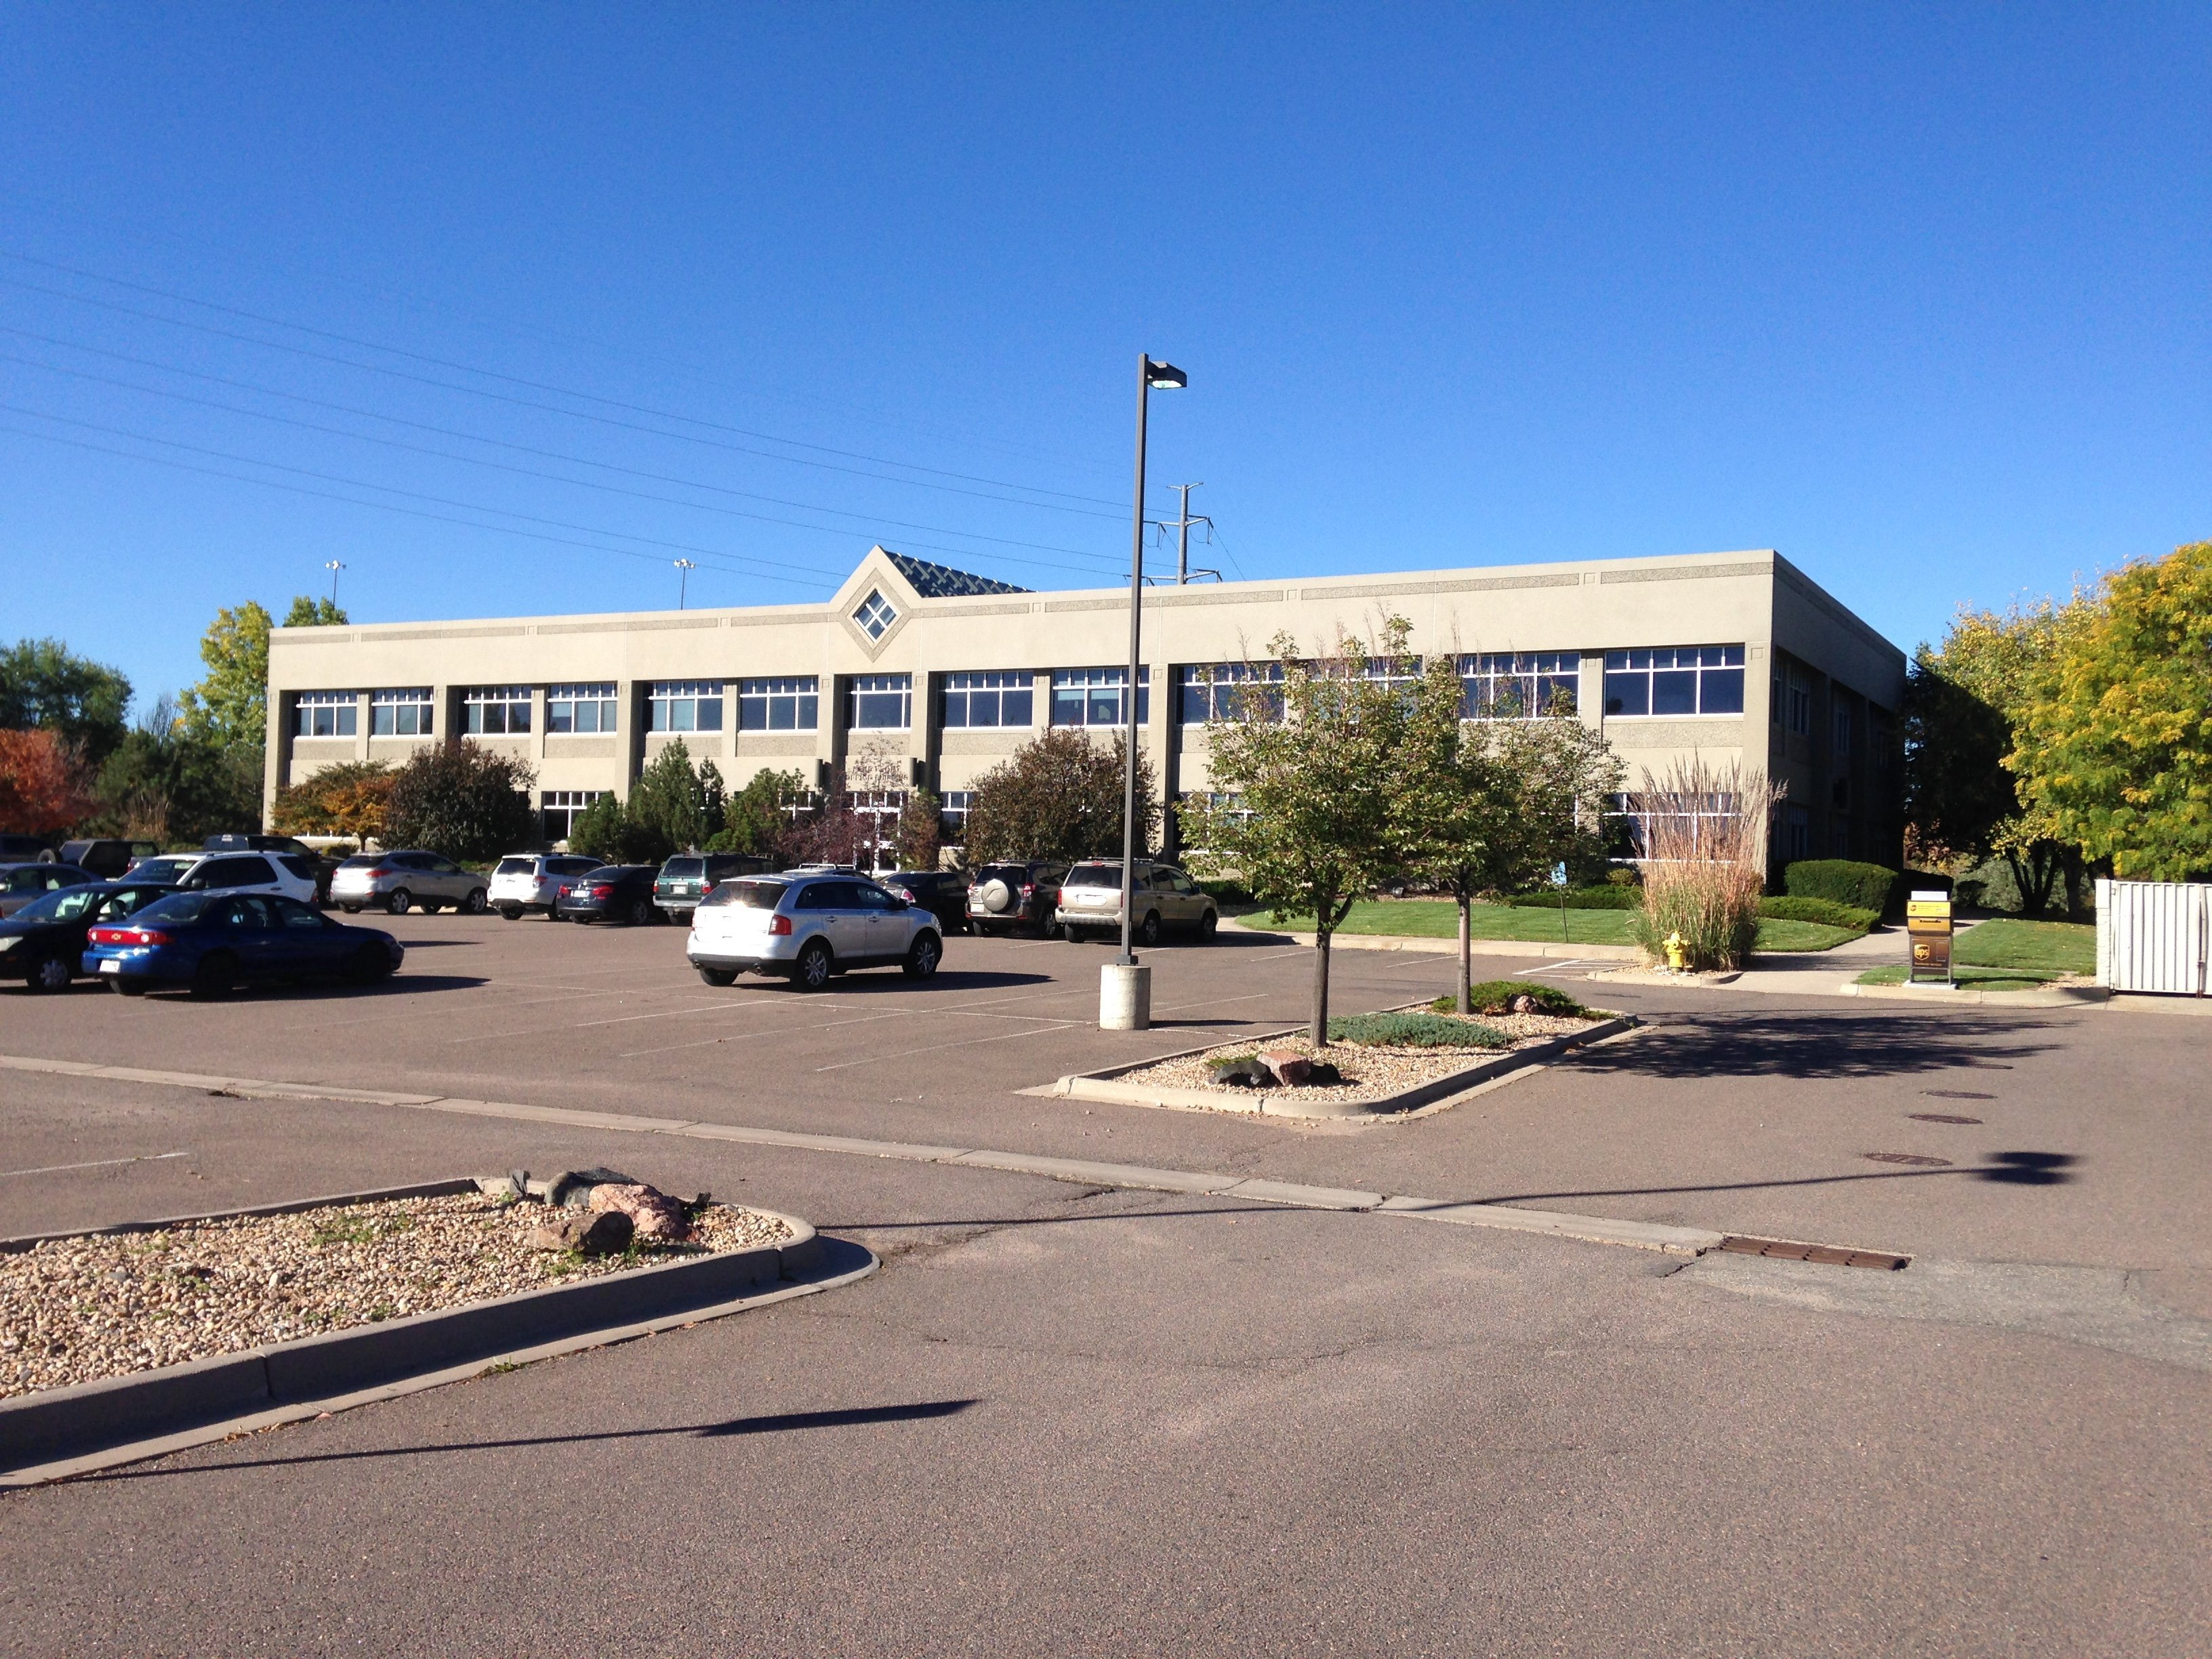 NavPoint Real Estate Group sells 25,259 SF at 6850 W 52nd Ave in Arvada, CO for $3,000,000